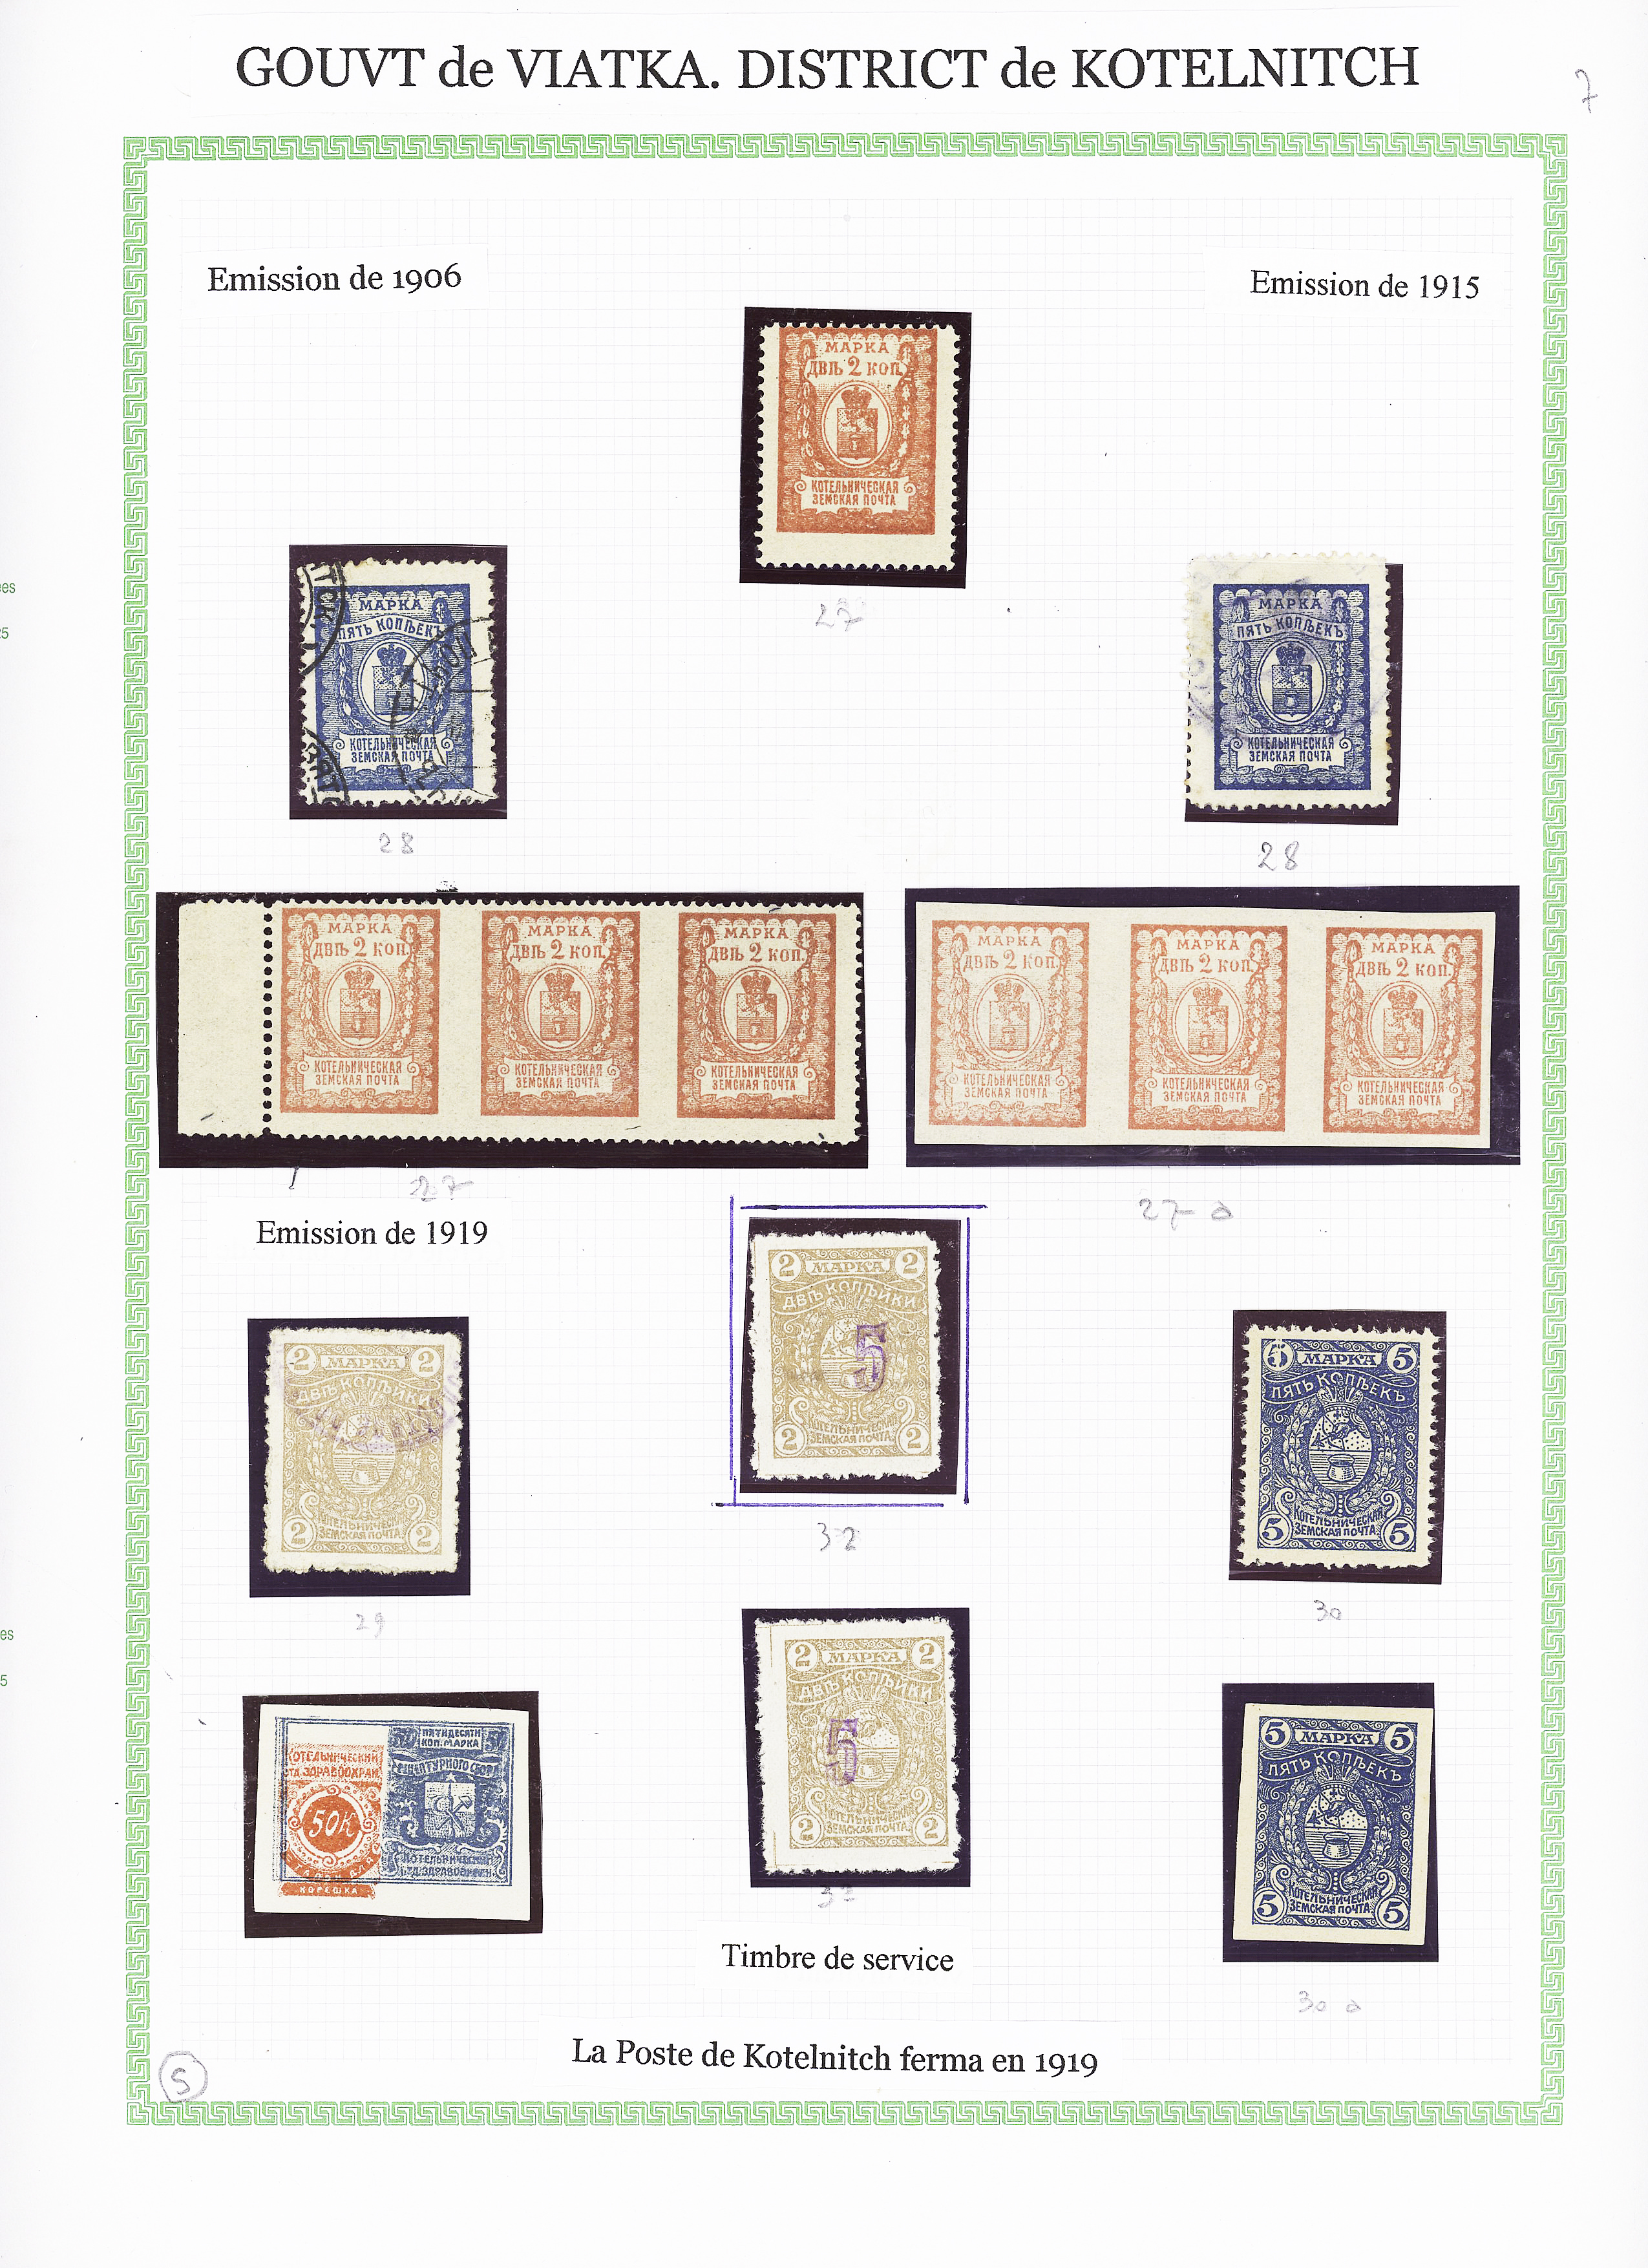 Lot 481 - Eastern Europe » RUSSIA - ZEMSTVOS » Kotelnich (Viatka Government)  -  Le Timbre Classique SA SALE ON OFFERS N ° 37 PARIS